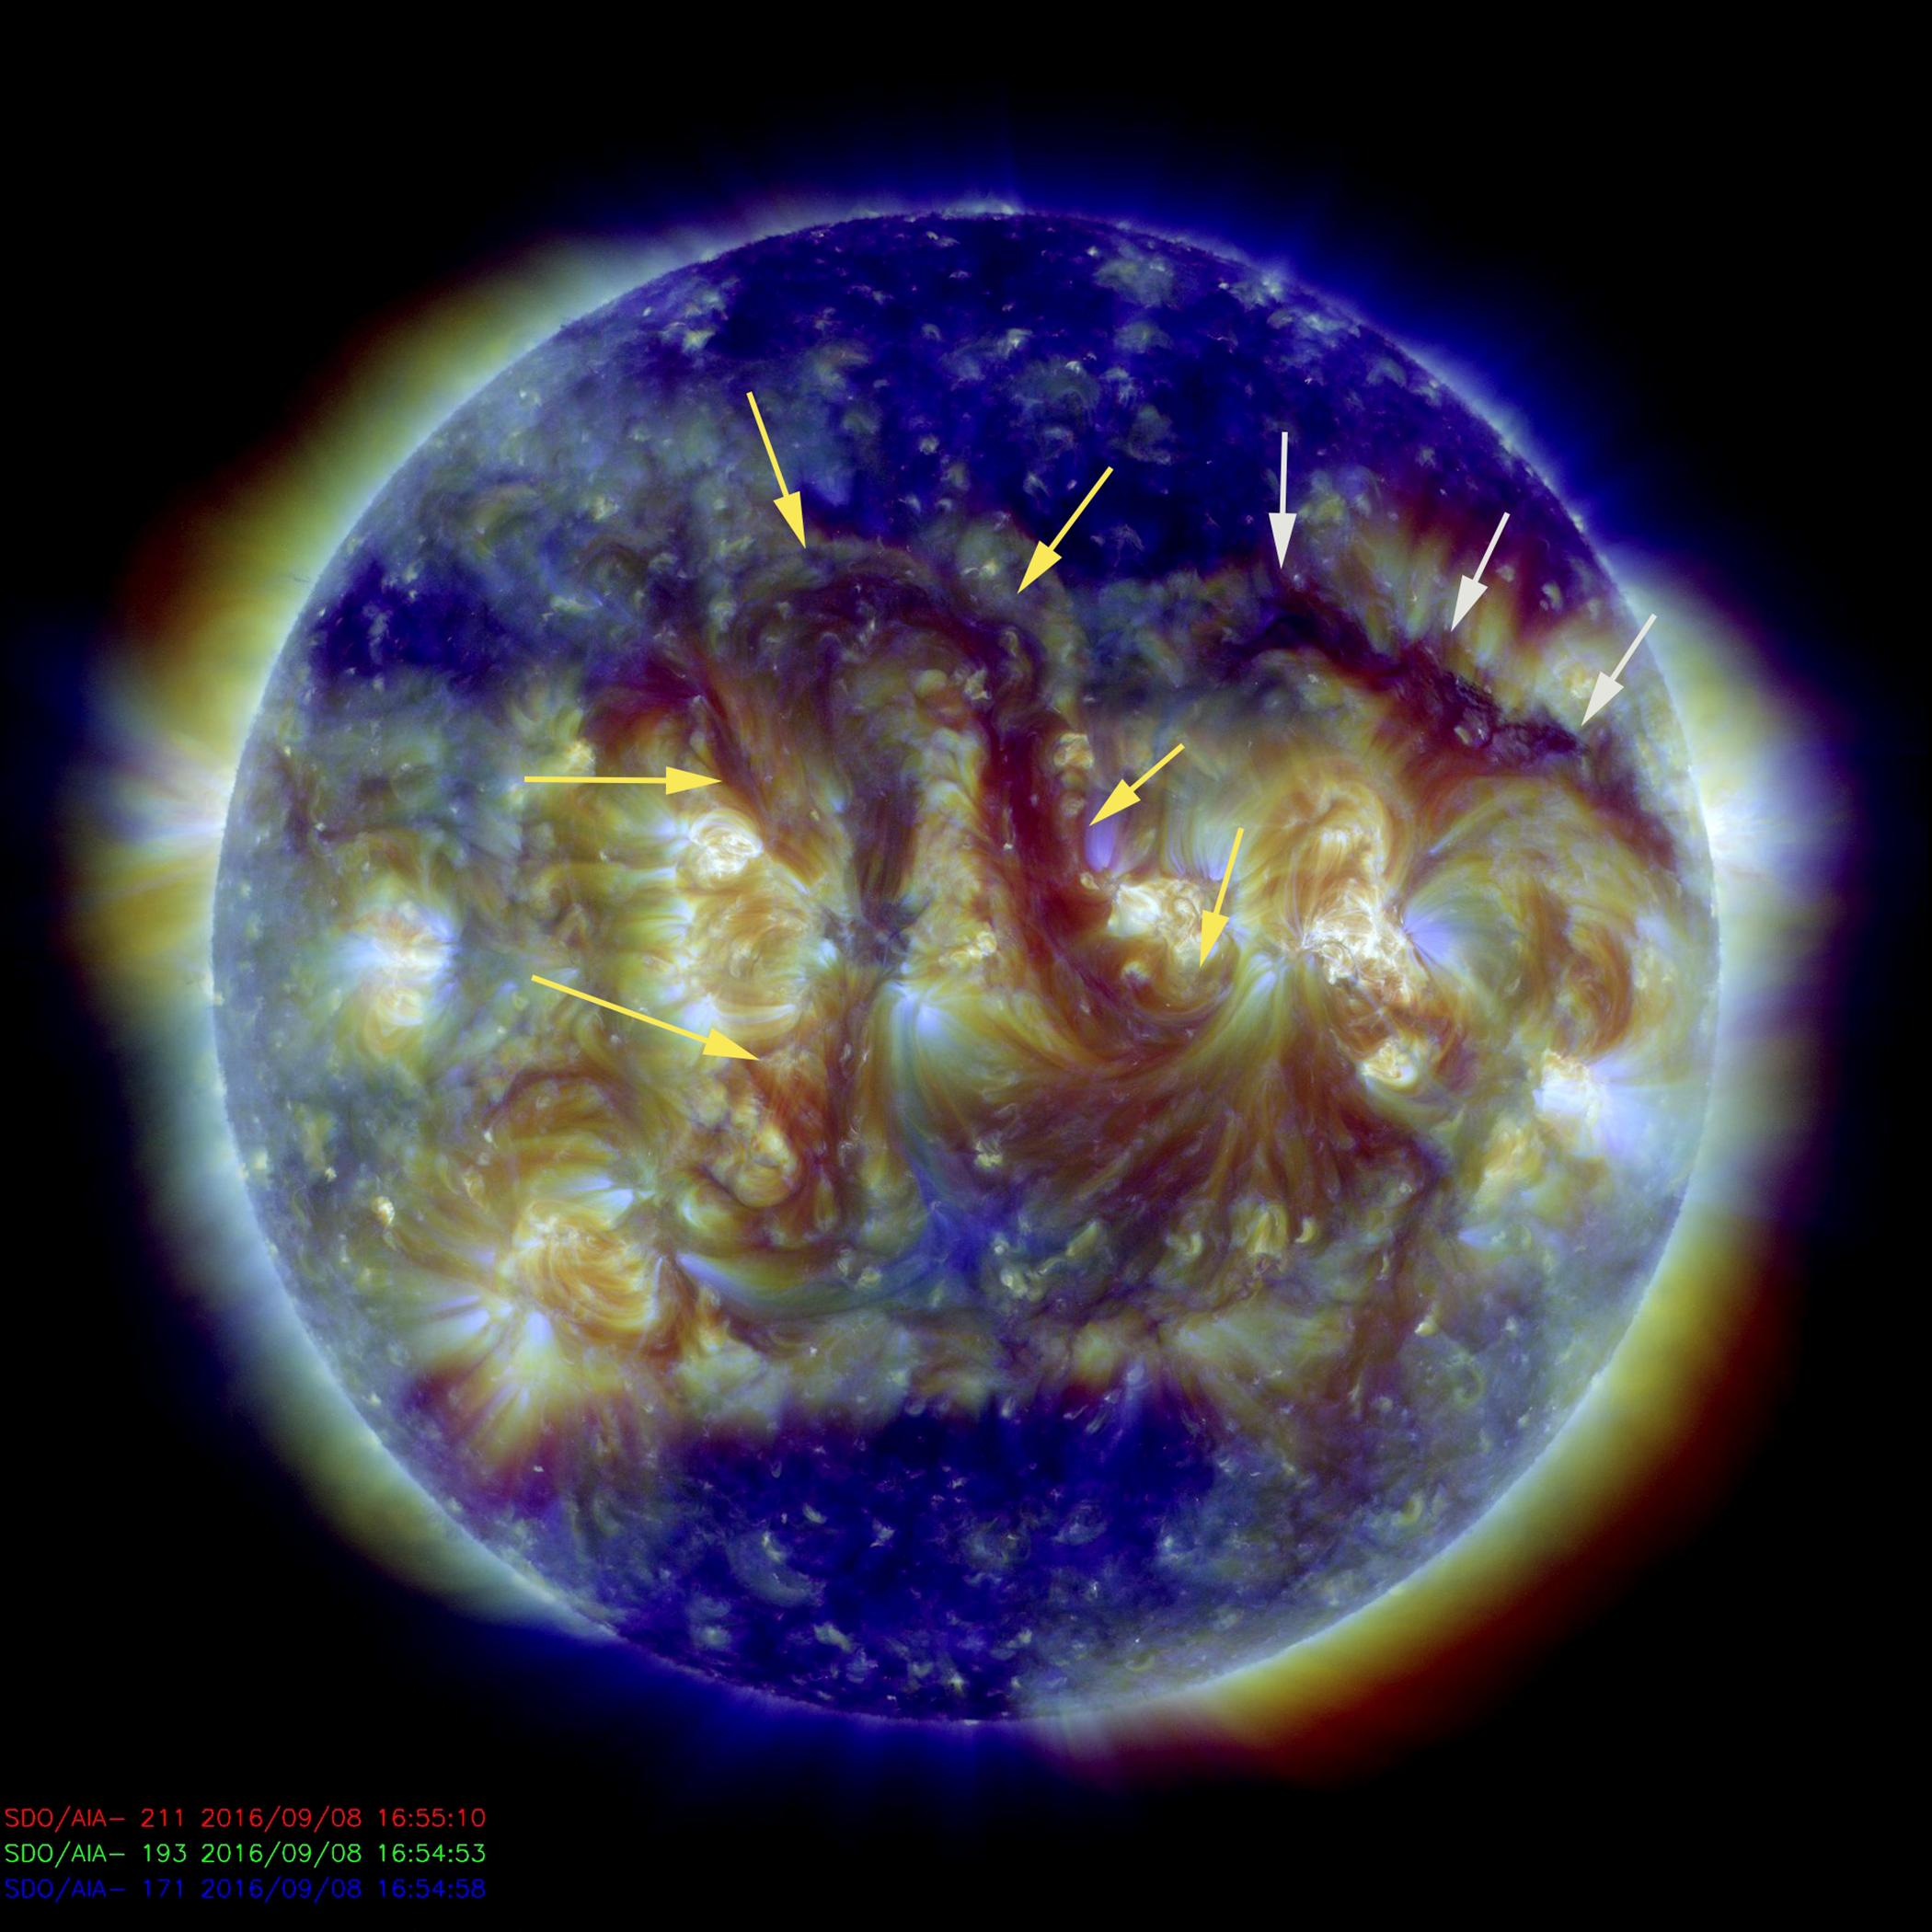 A pair of elongated filaments observed across the Sun. The image was made by combining three images in different wavelengths of extreme ultraviolet light shown in blues, yellow and dark red.